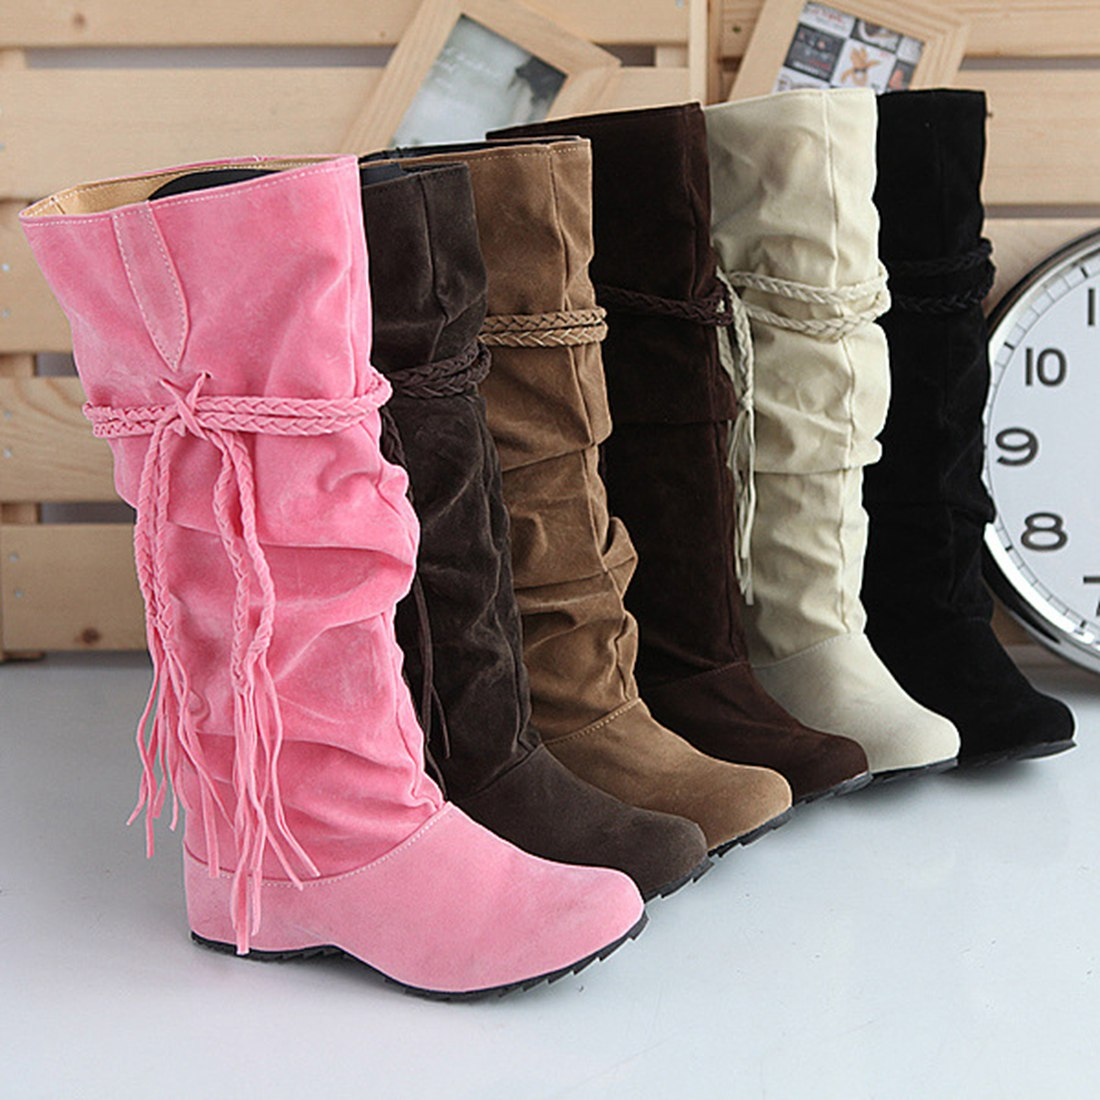 Girls Boots Size 1.5 Promotion-Shop for Promotional Girls Boots ...